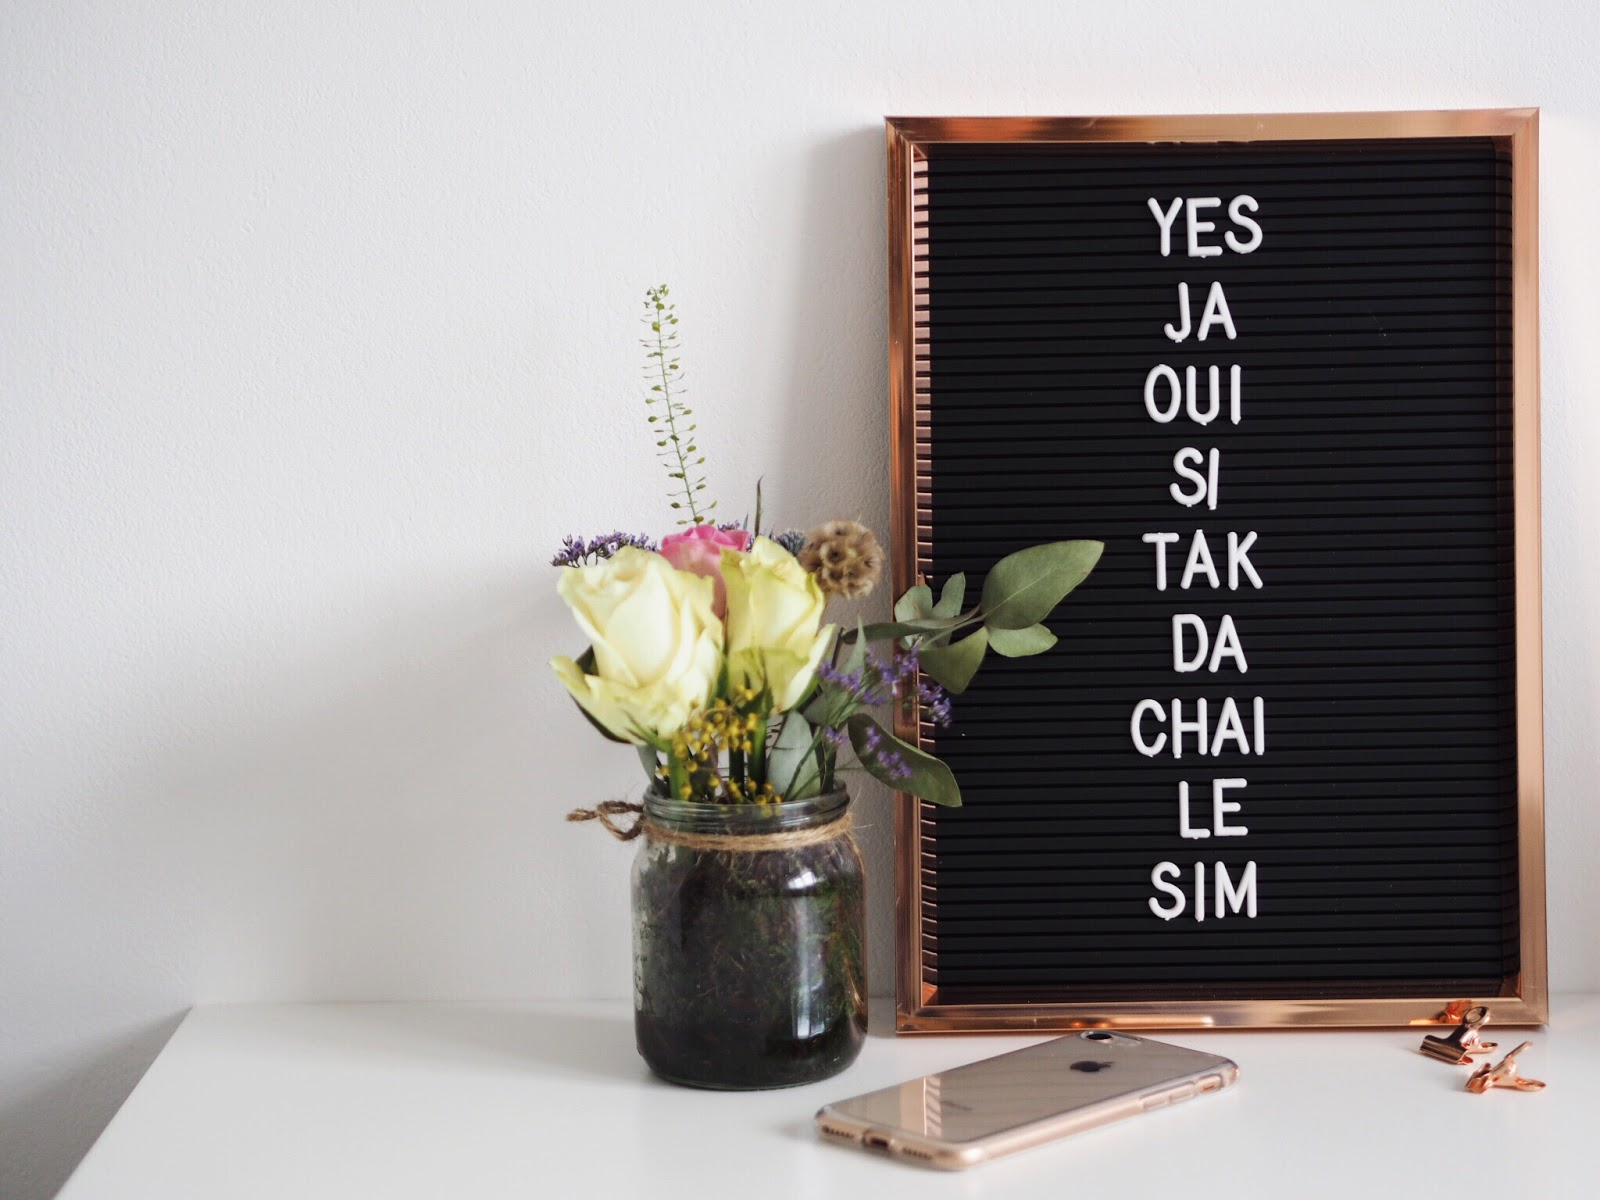 Copper & Black Letter Board with Yes in Multiple Languages with iphone 8, rose flower posy on a white desk